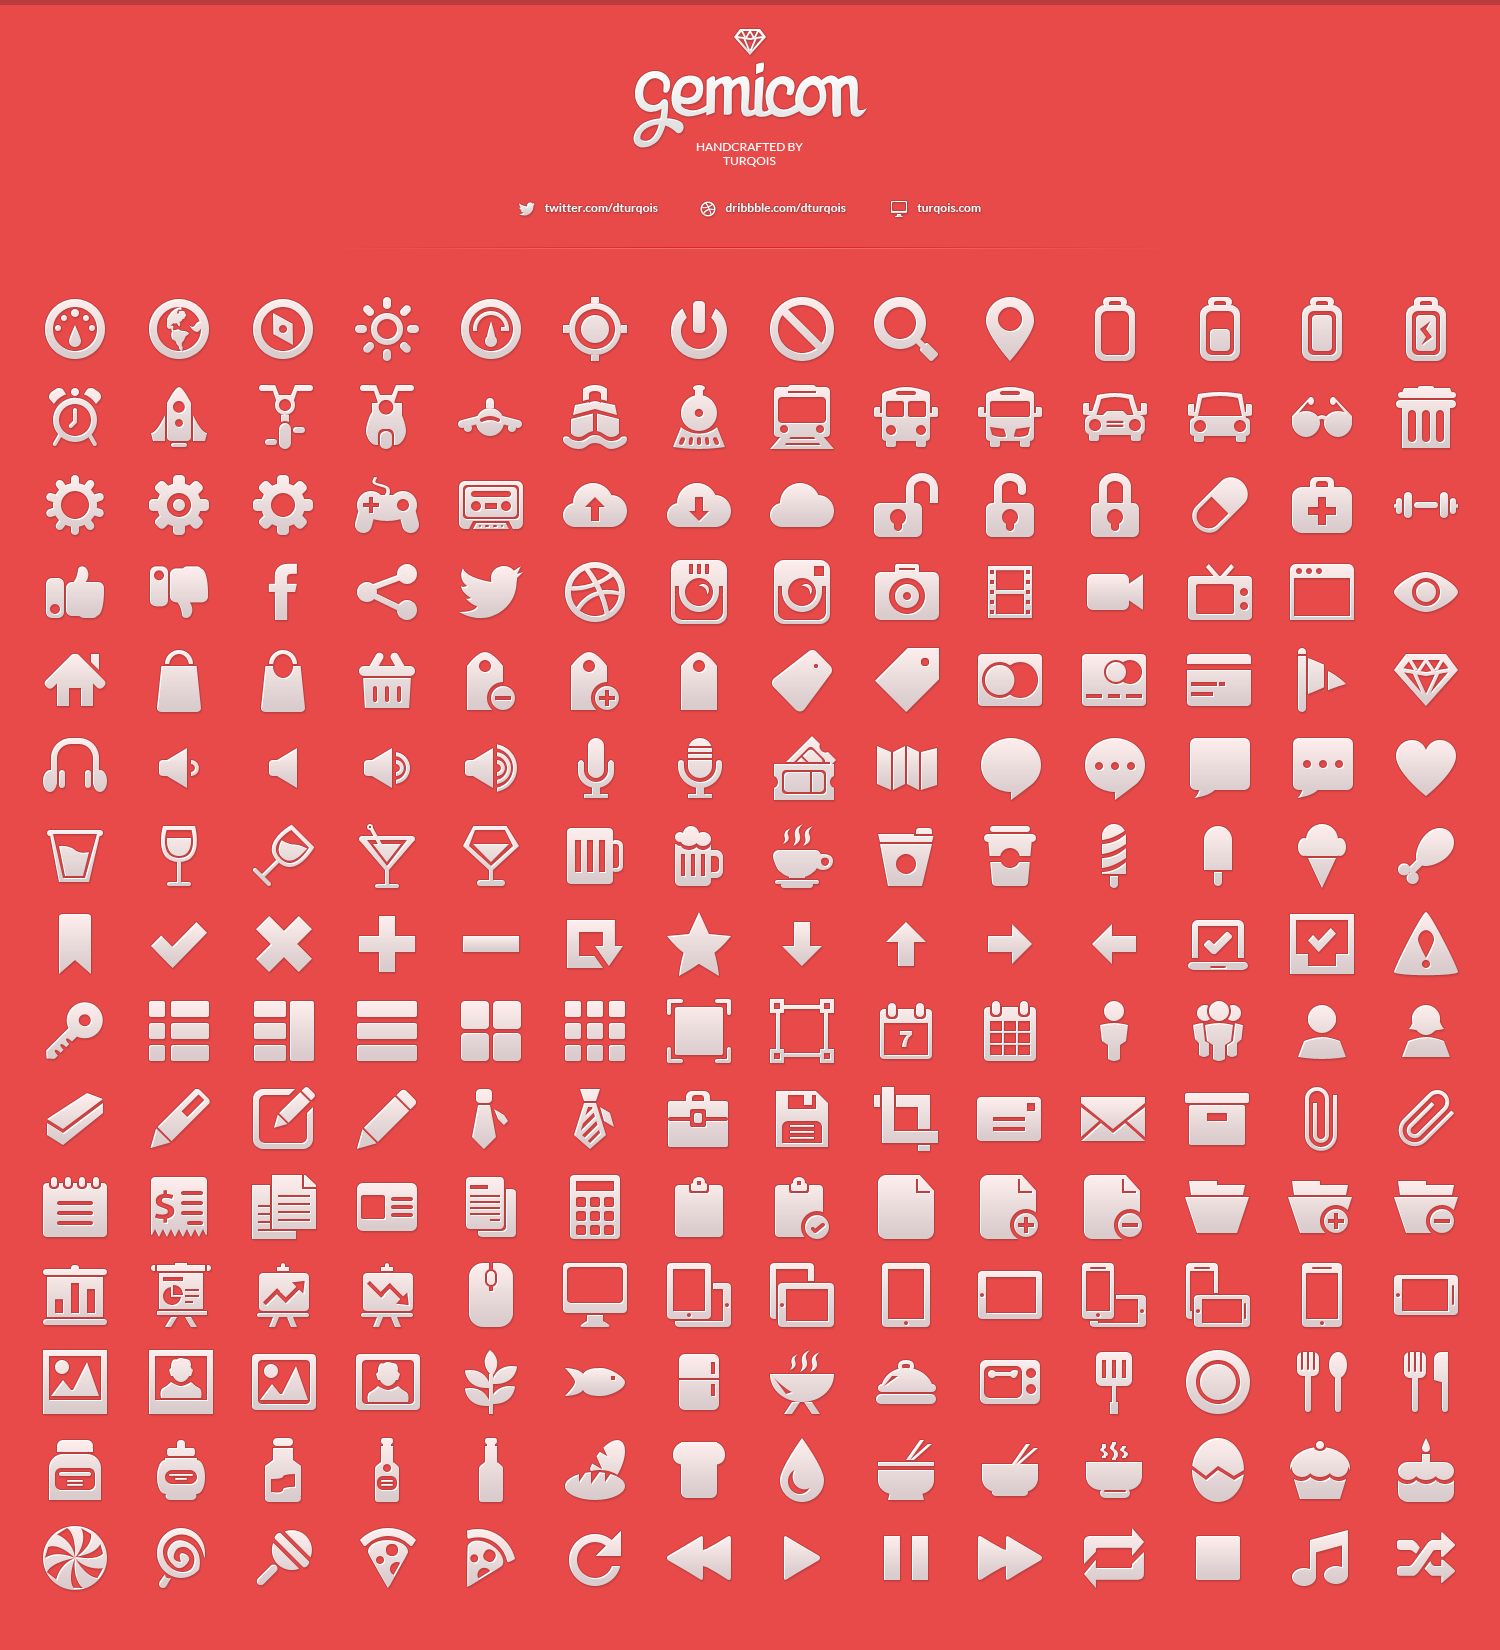 210 Gemicon White Icons